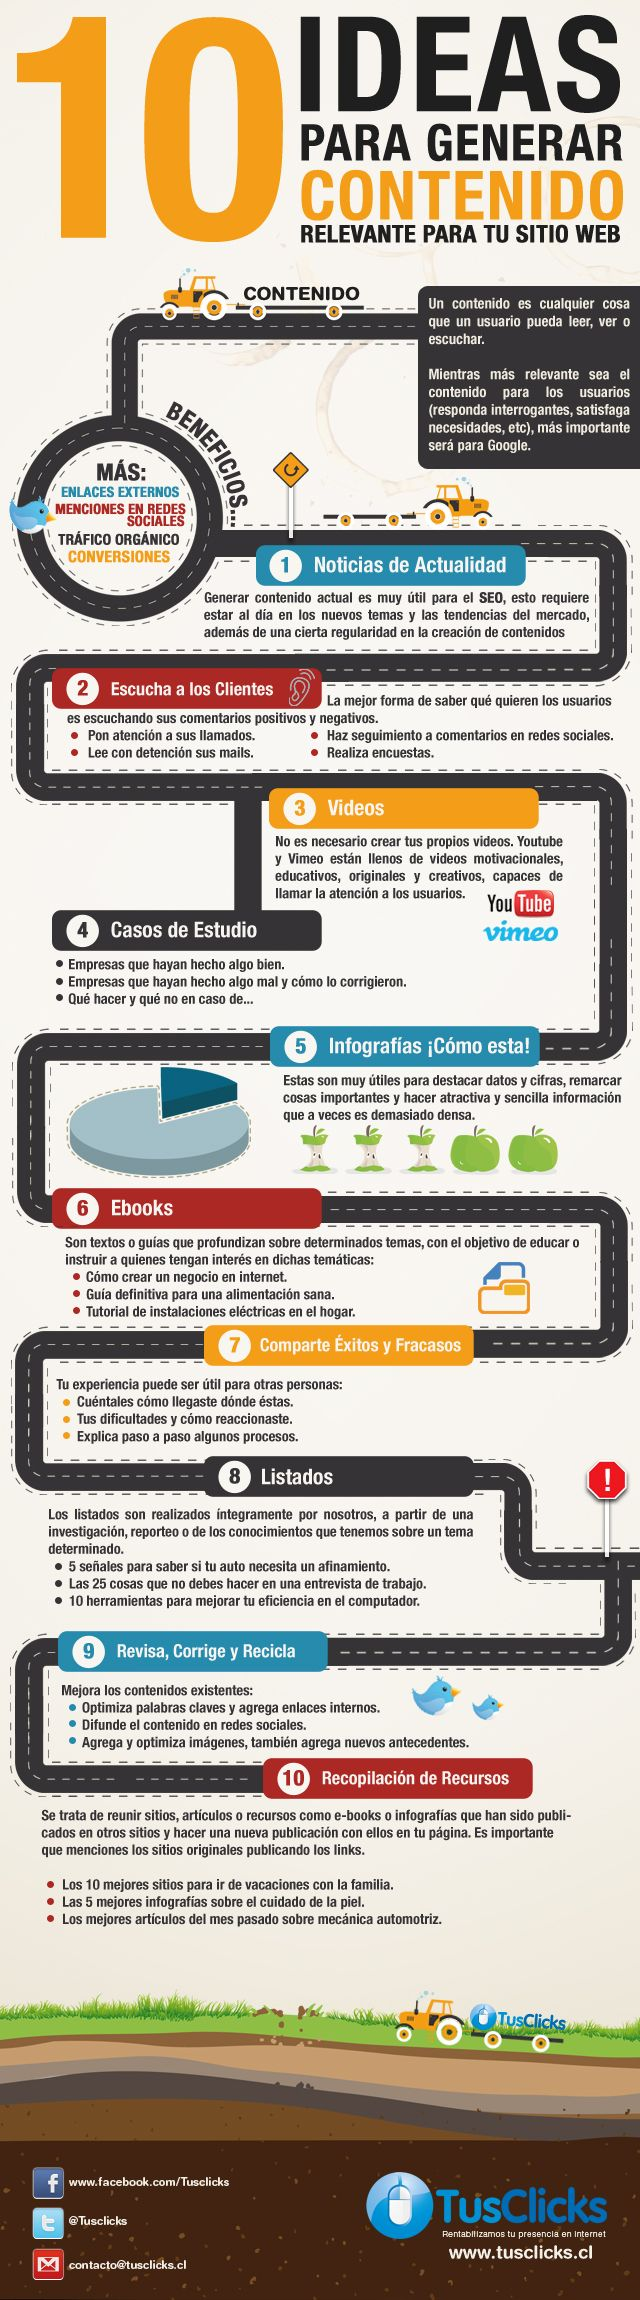 10 ideas para generar contenido relevante para tu web #infografia #infographic #internet #marketing